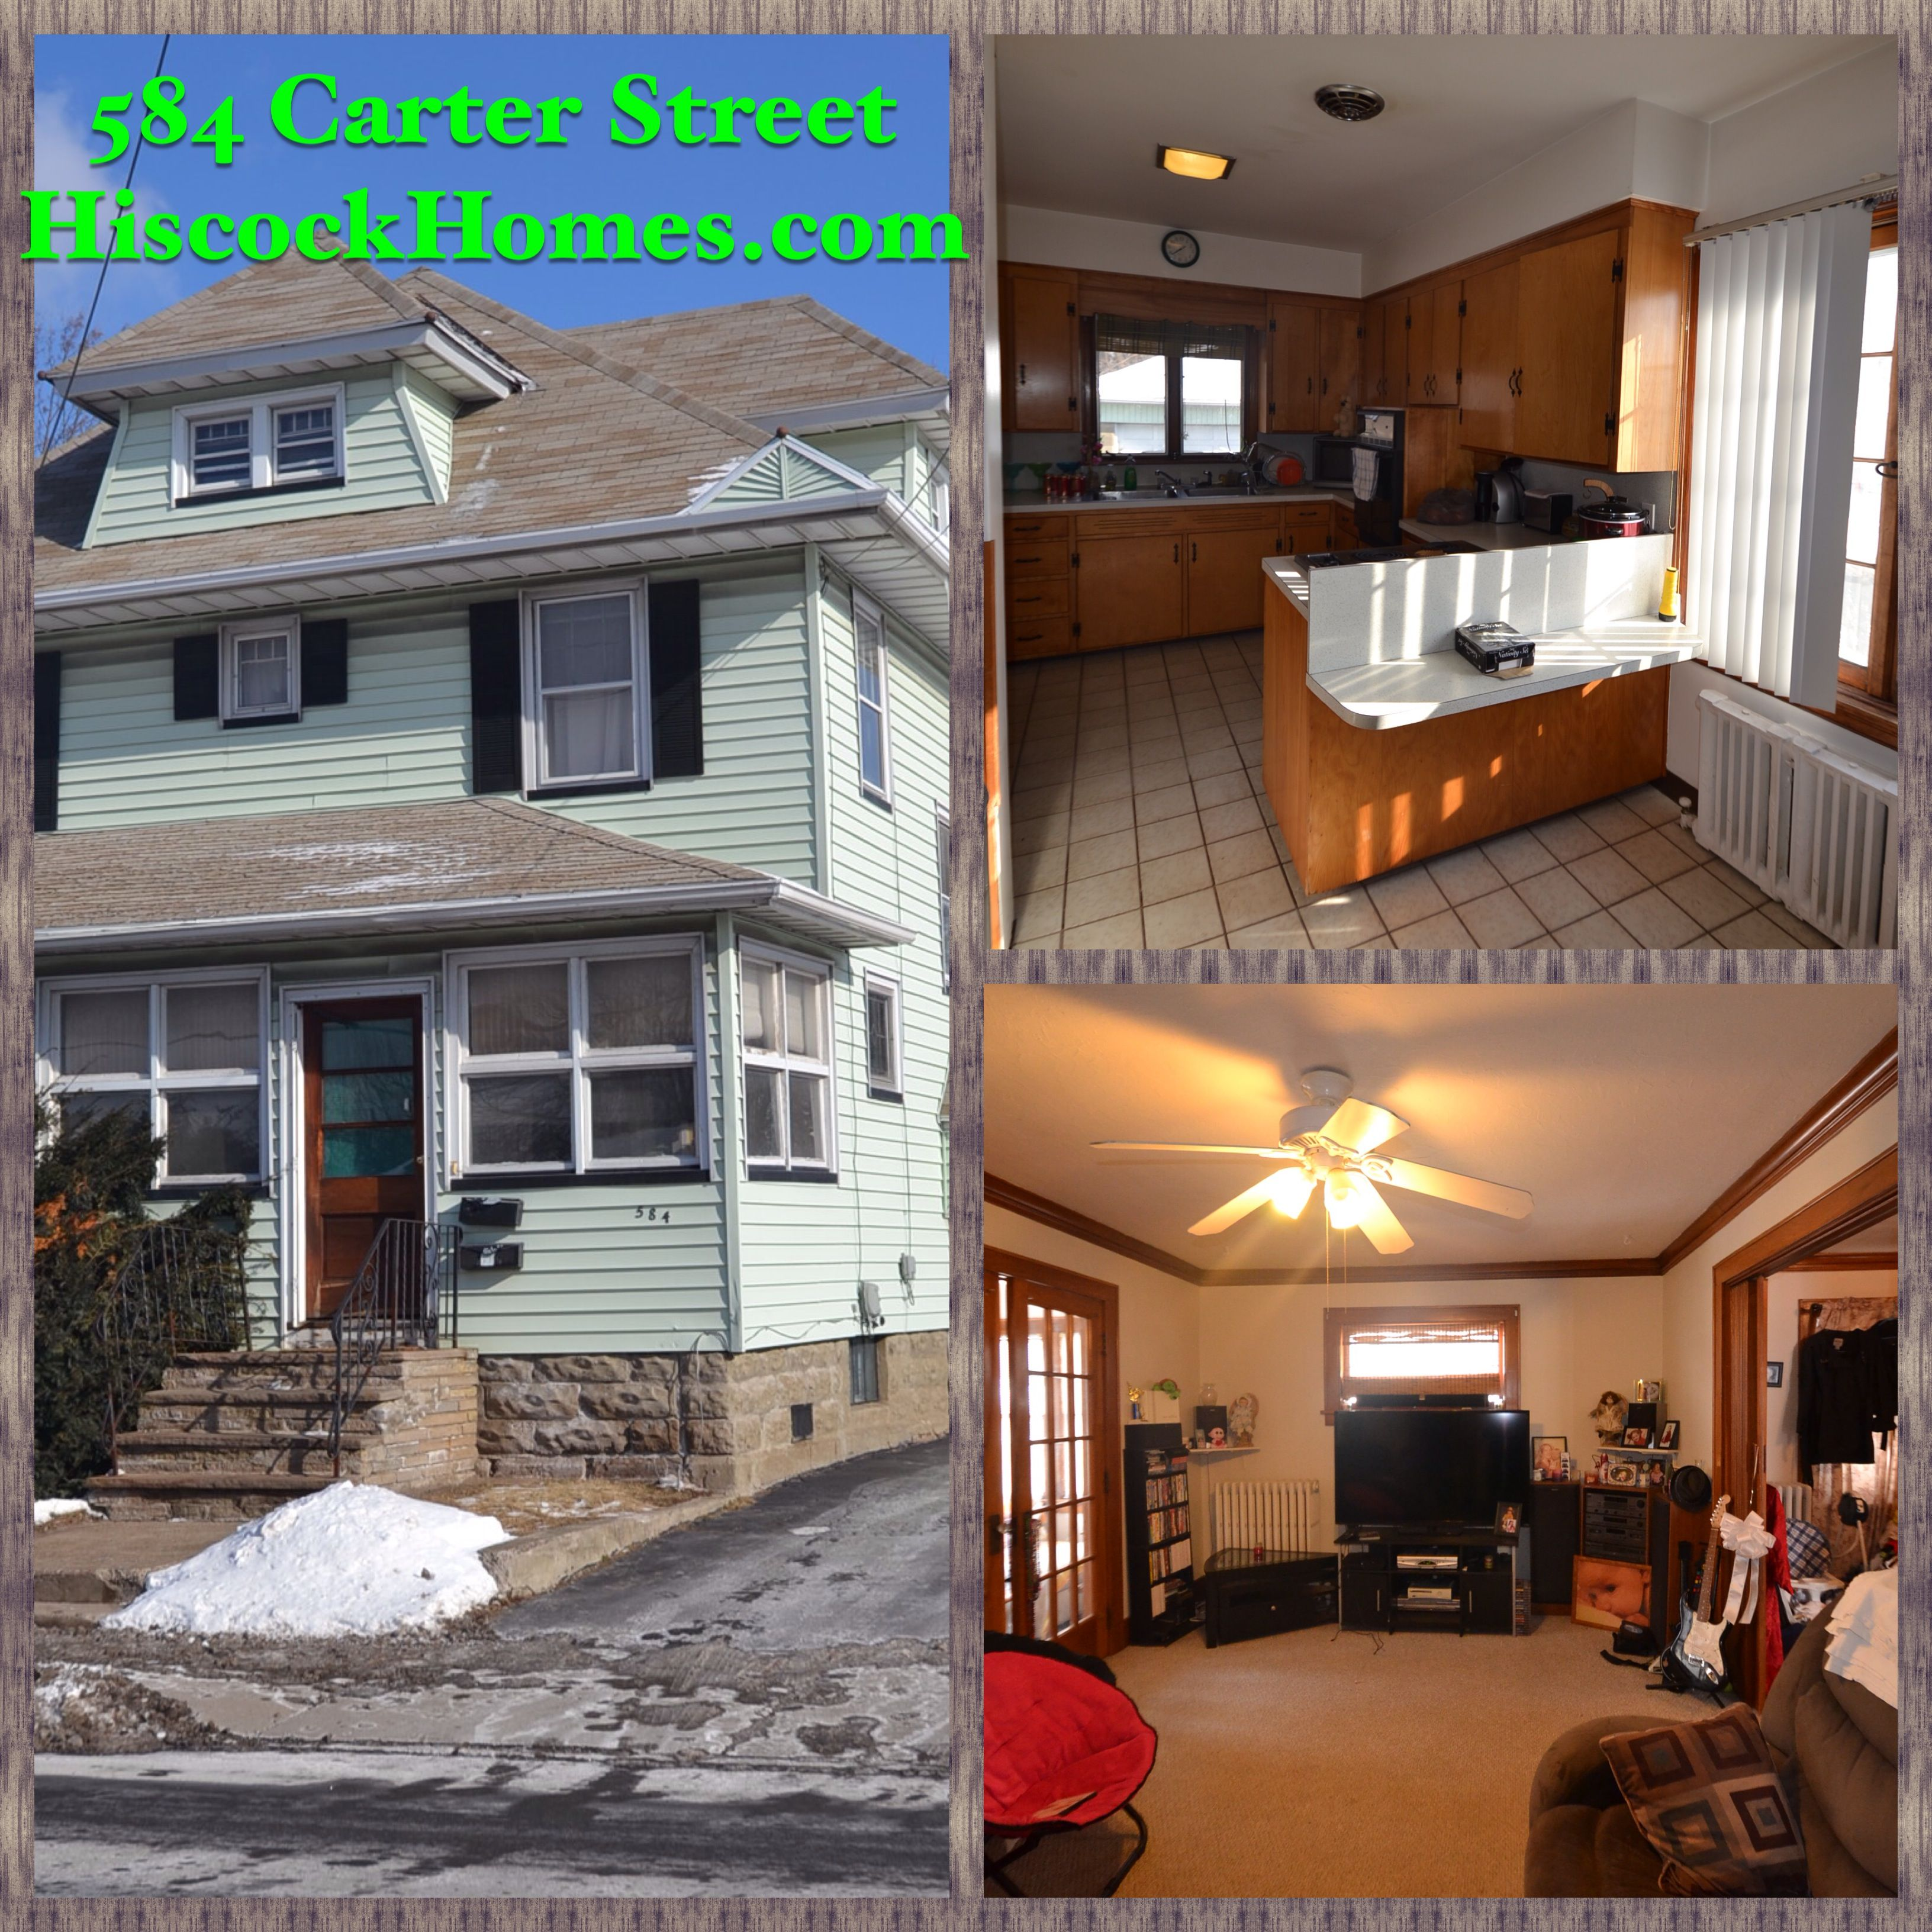 Just listed 584 carter street is a near 2400 sq ft